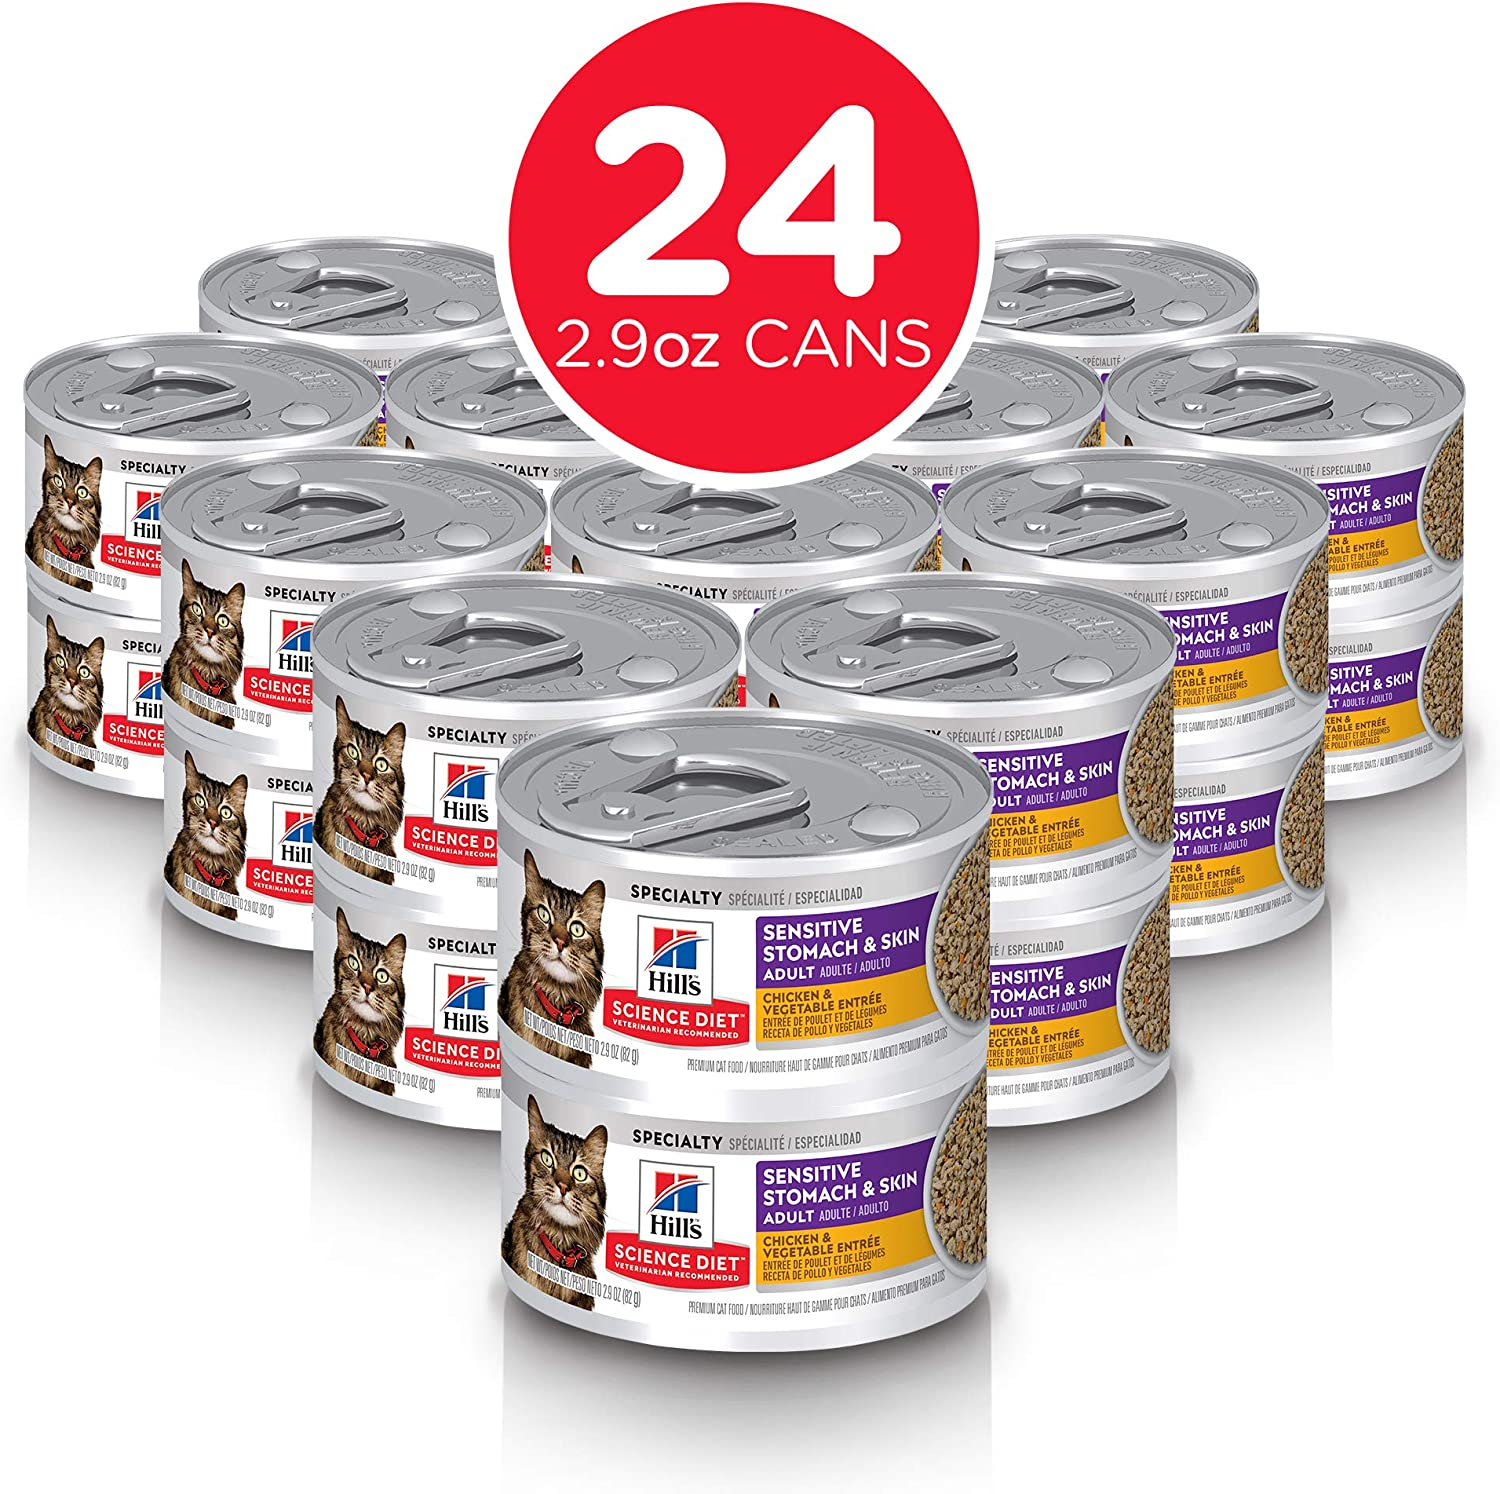 Hill's Science Diet Adult Sensitive Stomach & Skin Tuna & Vegetable Entrée Canned Cat Food